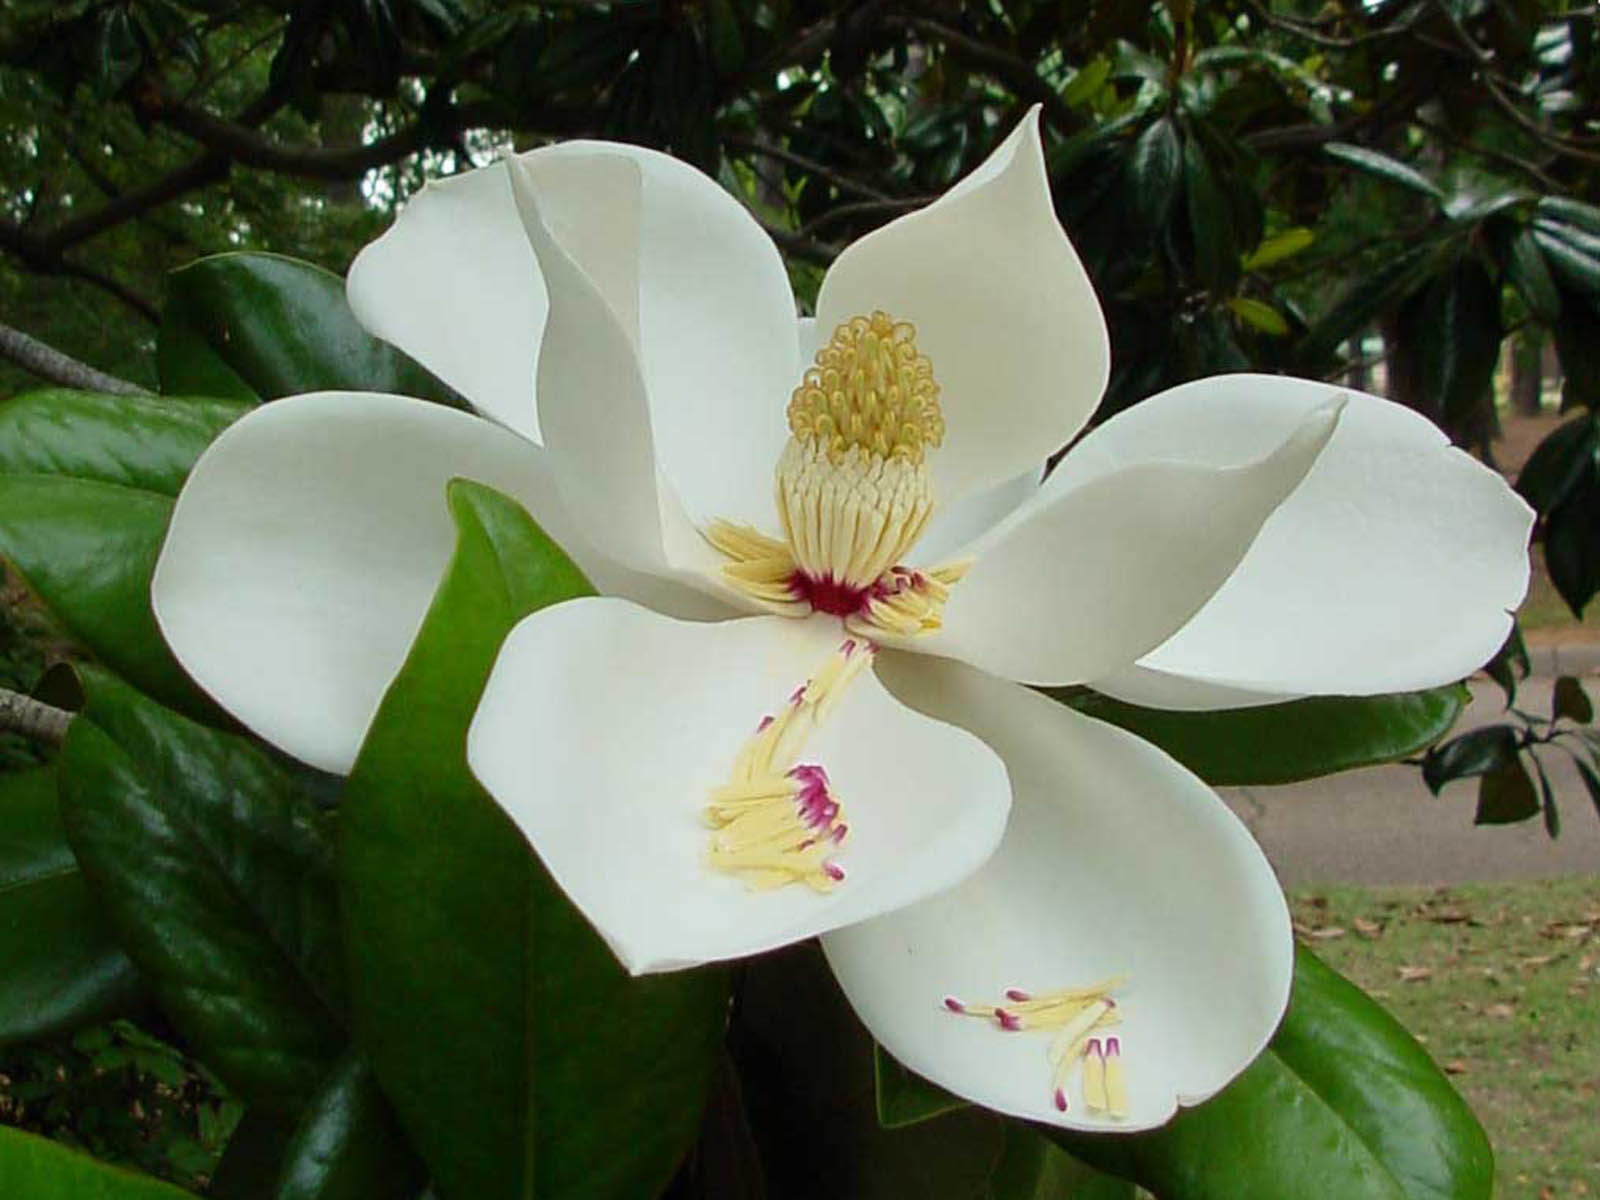 wallpaper: Southern Magnolia Flower Wallpapers: wallpaperstone.blogspot.com/2012/11/southern-magnolia-flower...